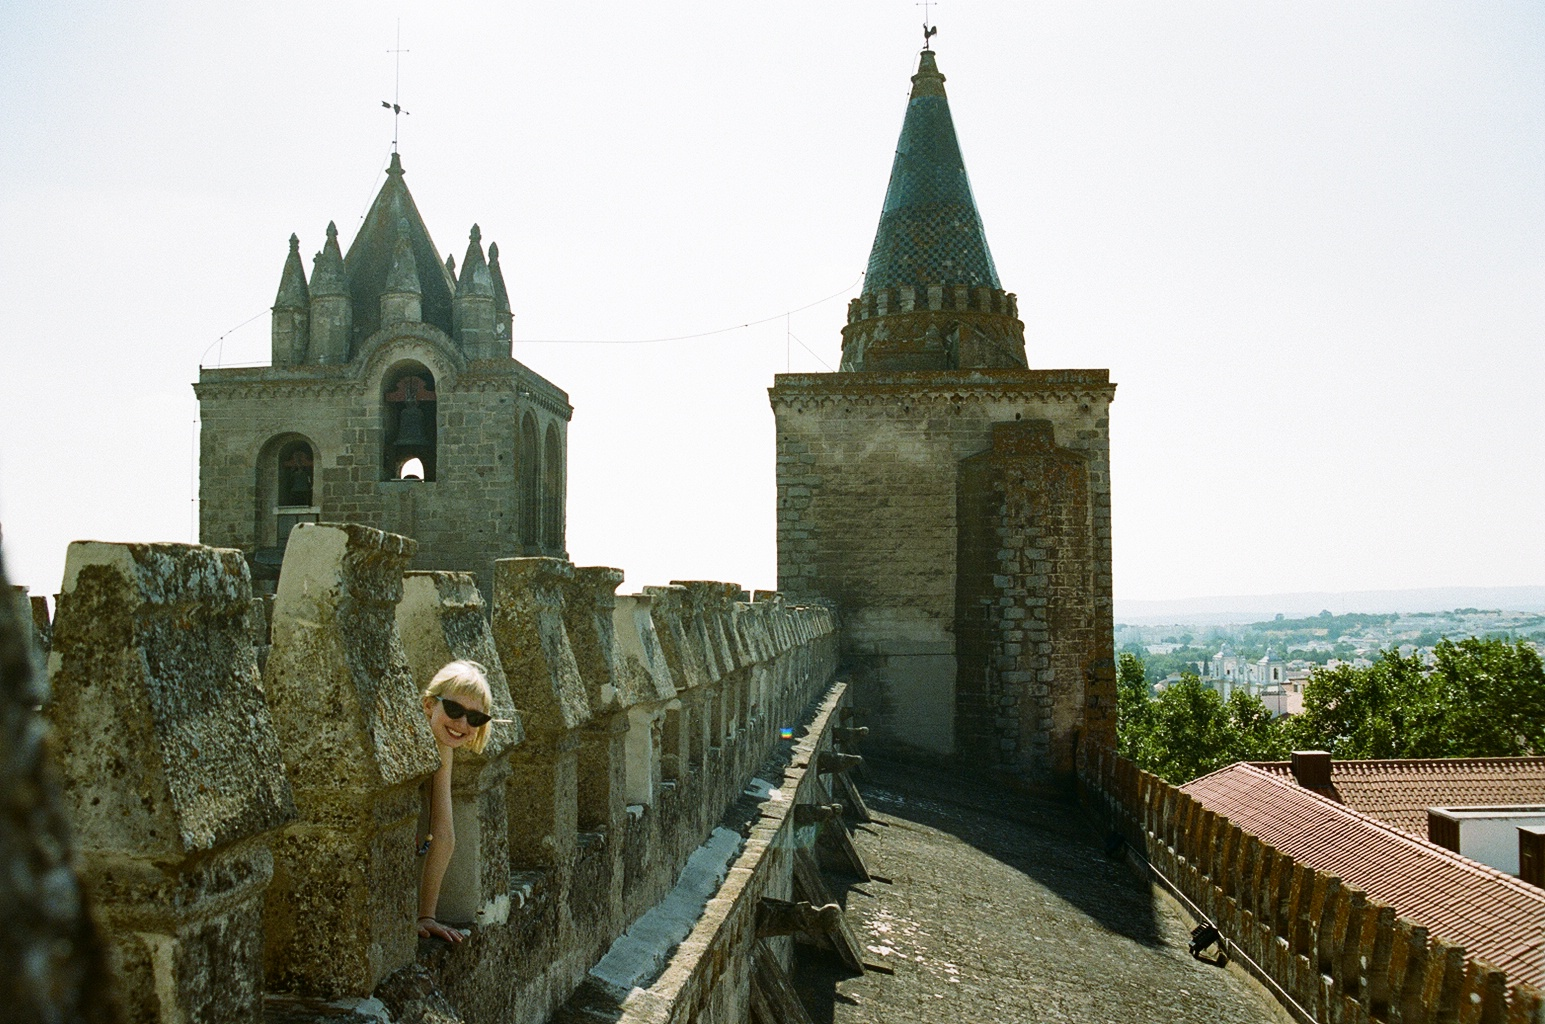 Eilidh on the roof of Évora's cathedral.